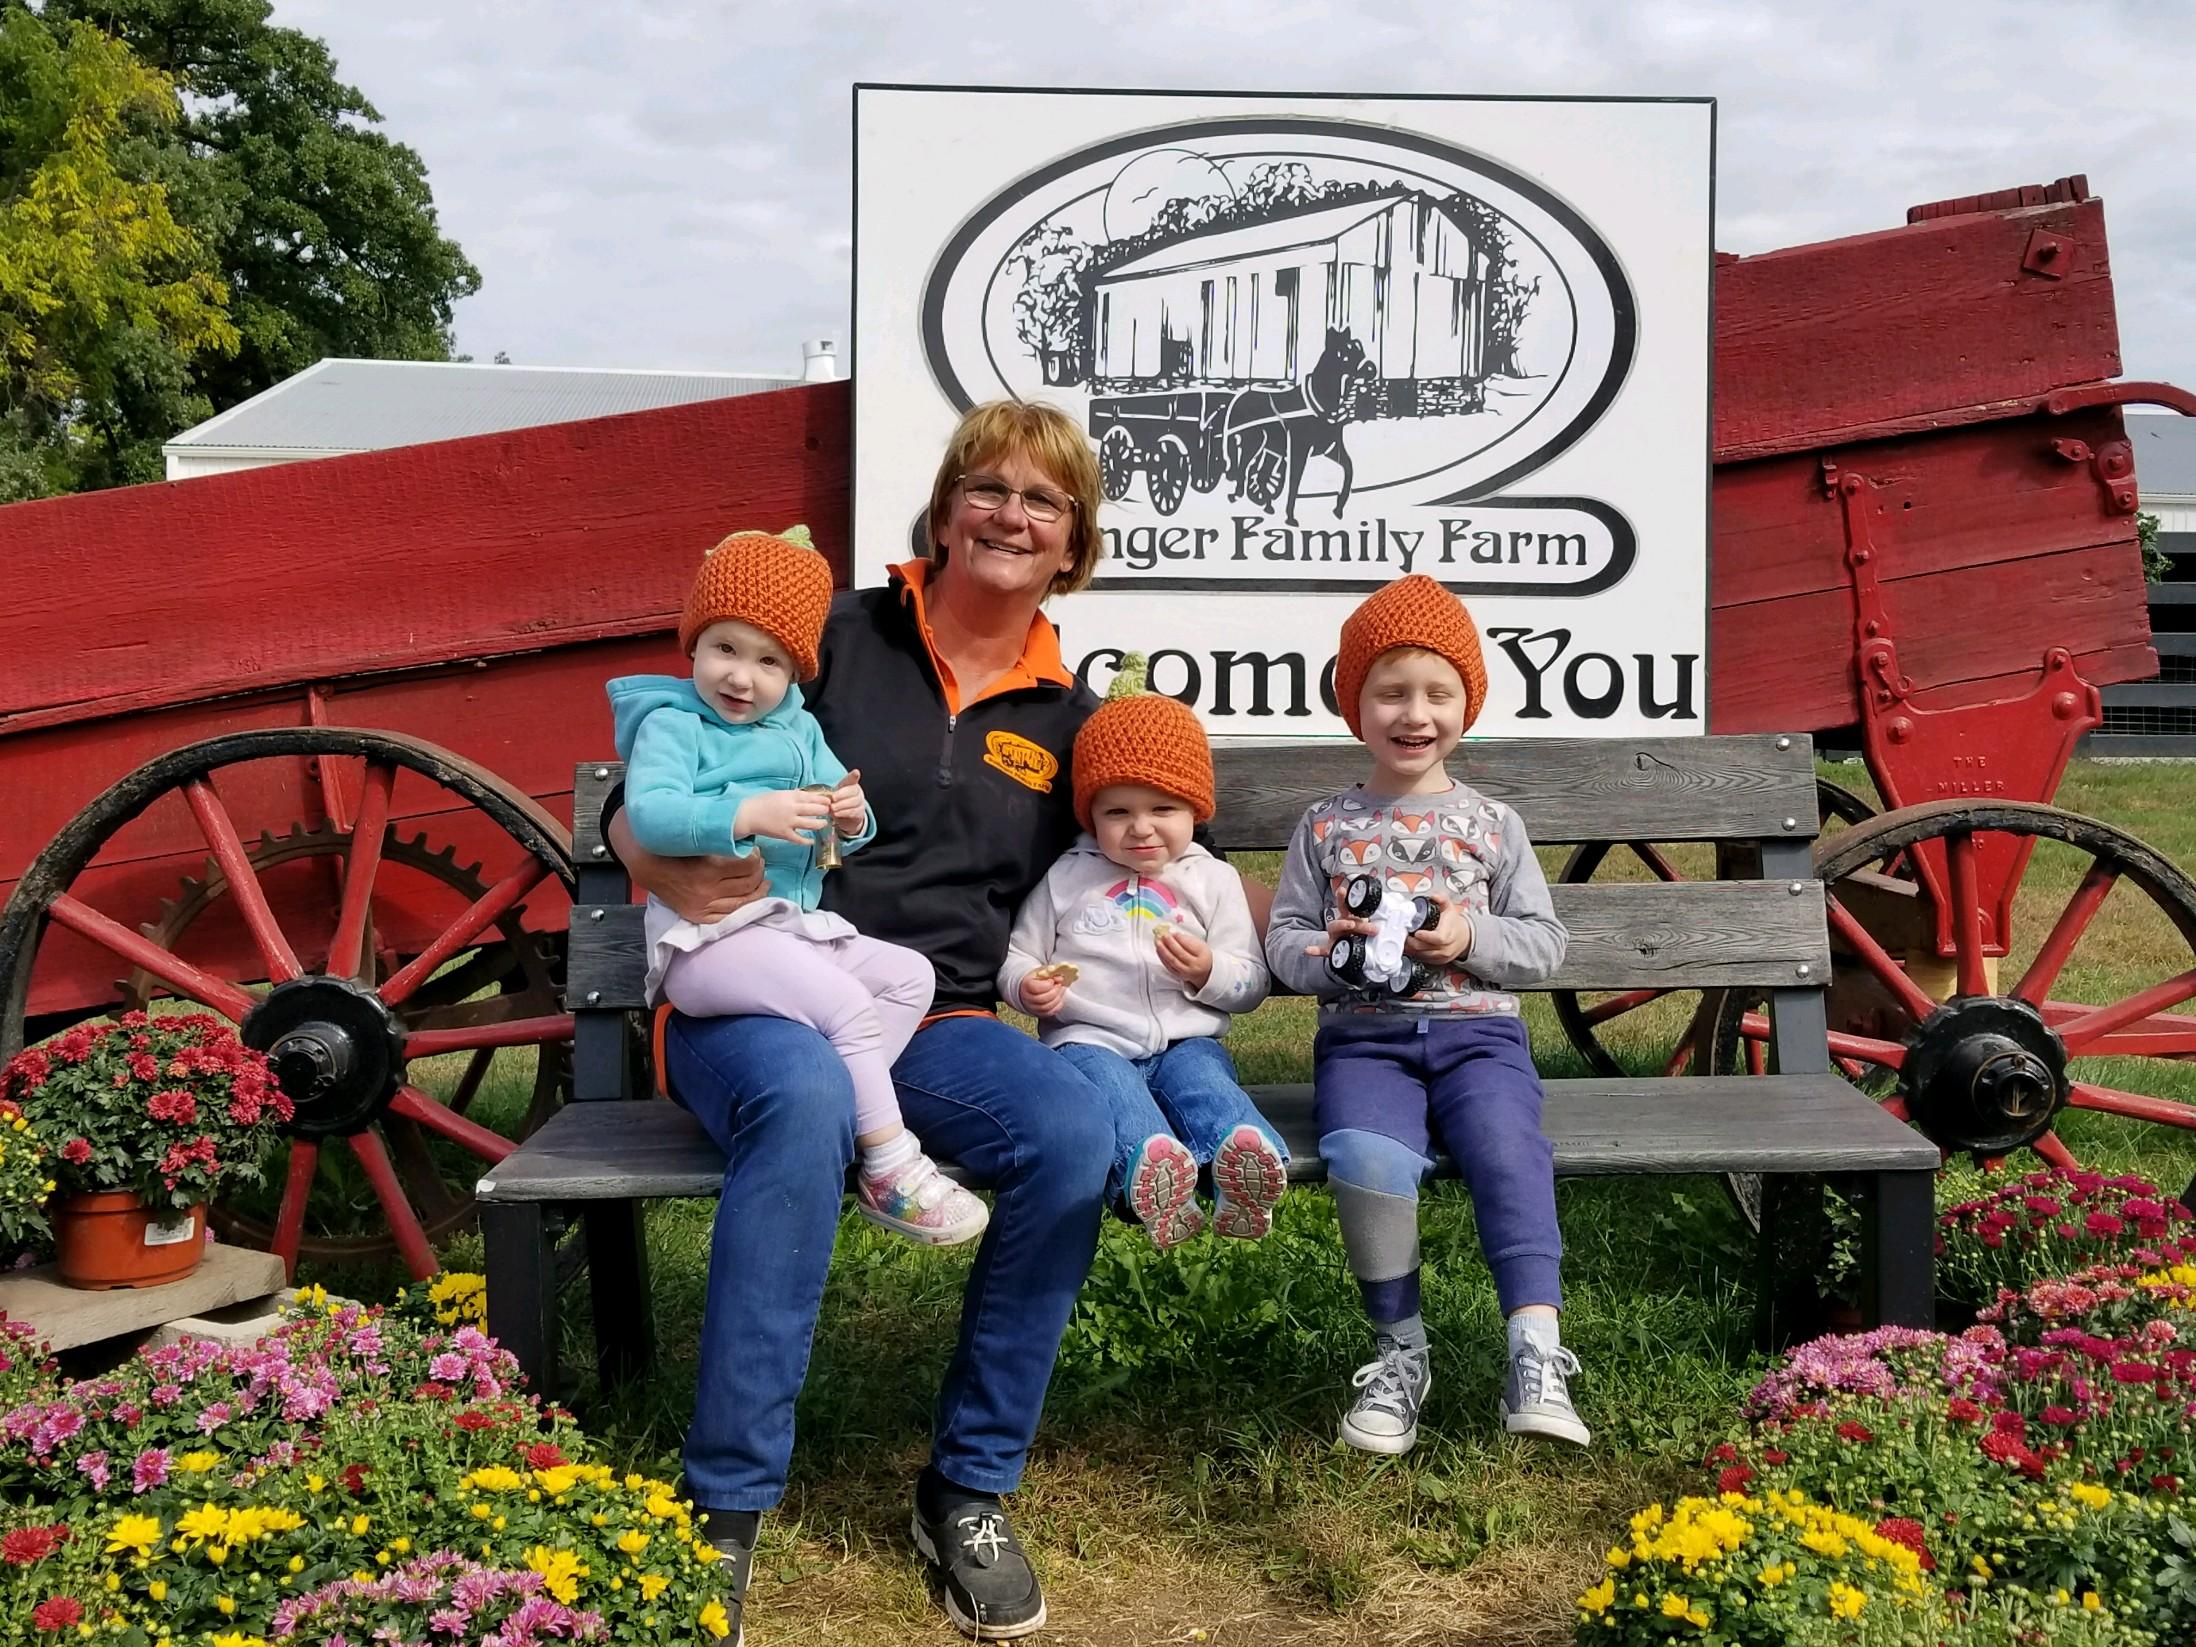 Noreen Dollinger with her three grandchildren in from of their welcome sign